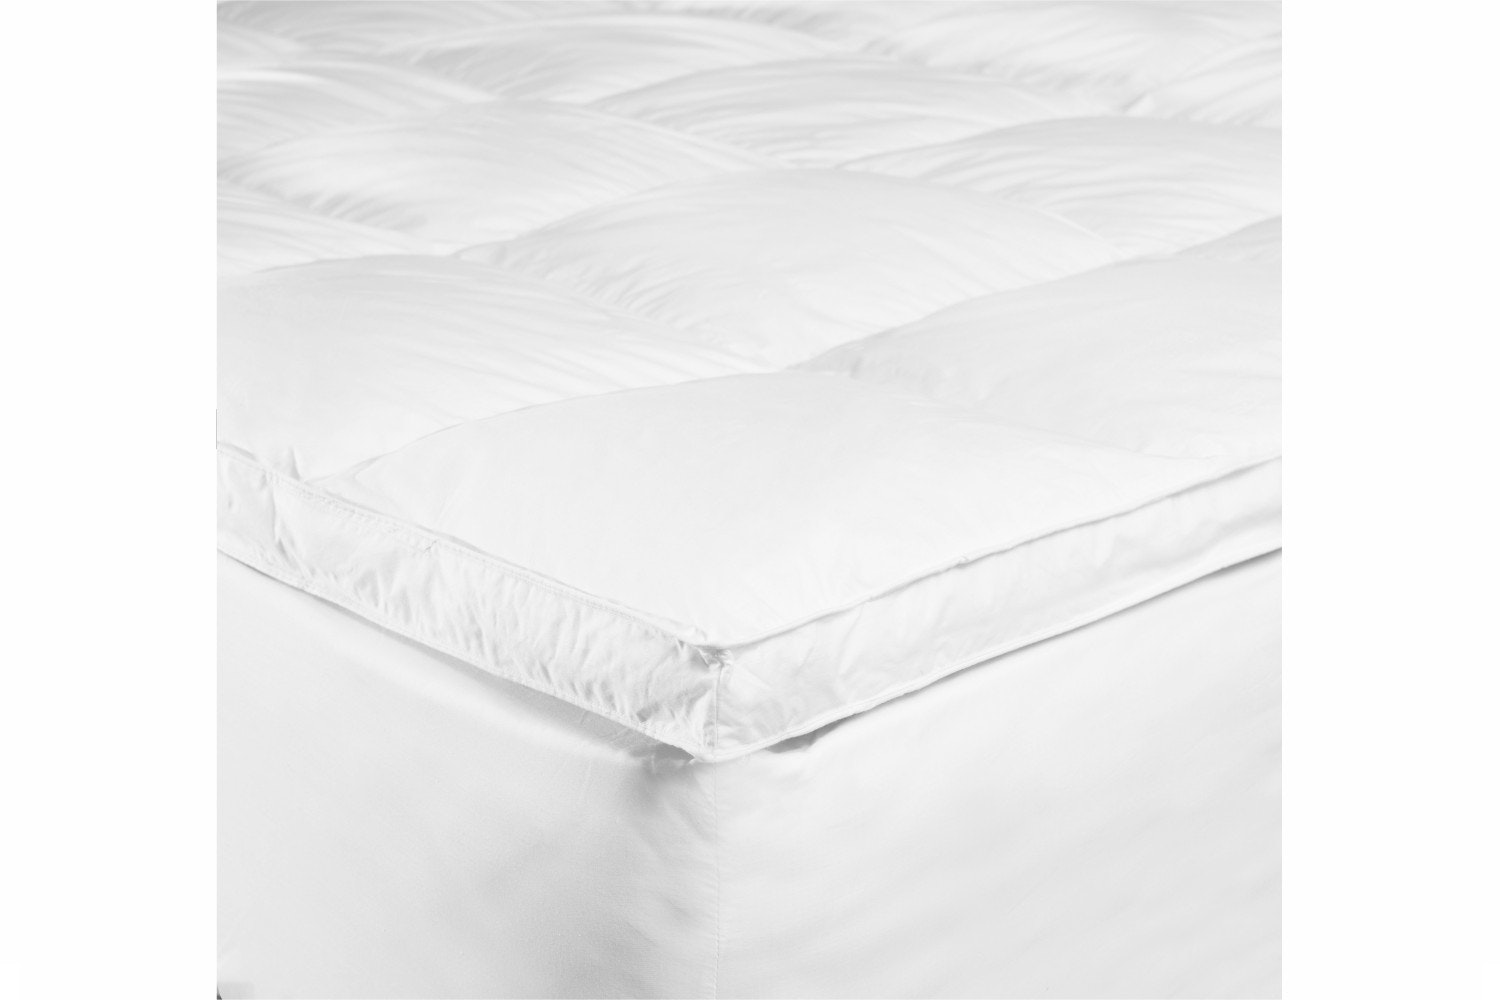 The Linen Room White Goose Feather & Down Topper | King